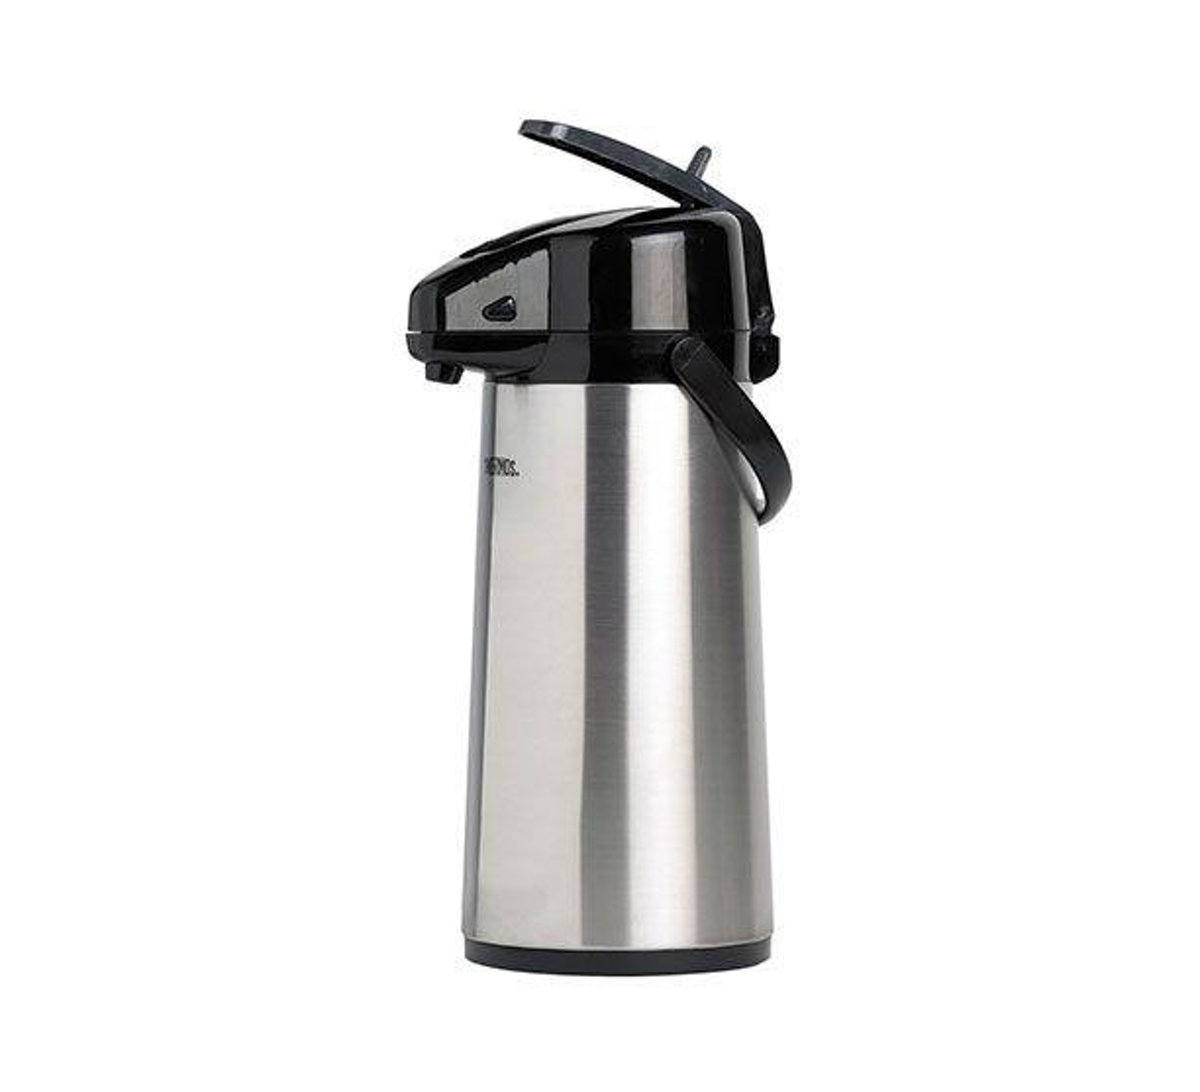 Thermo Pumpkanne Thermos Pomp Thermoskan 2 2 L